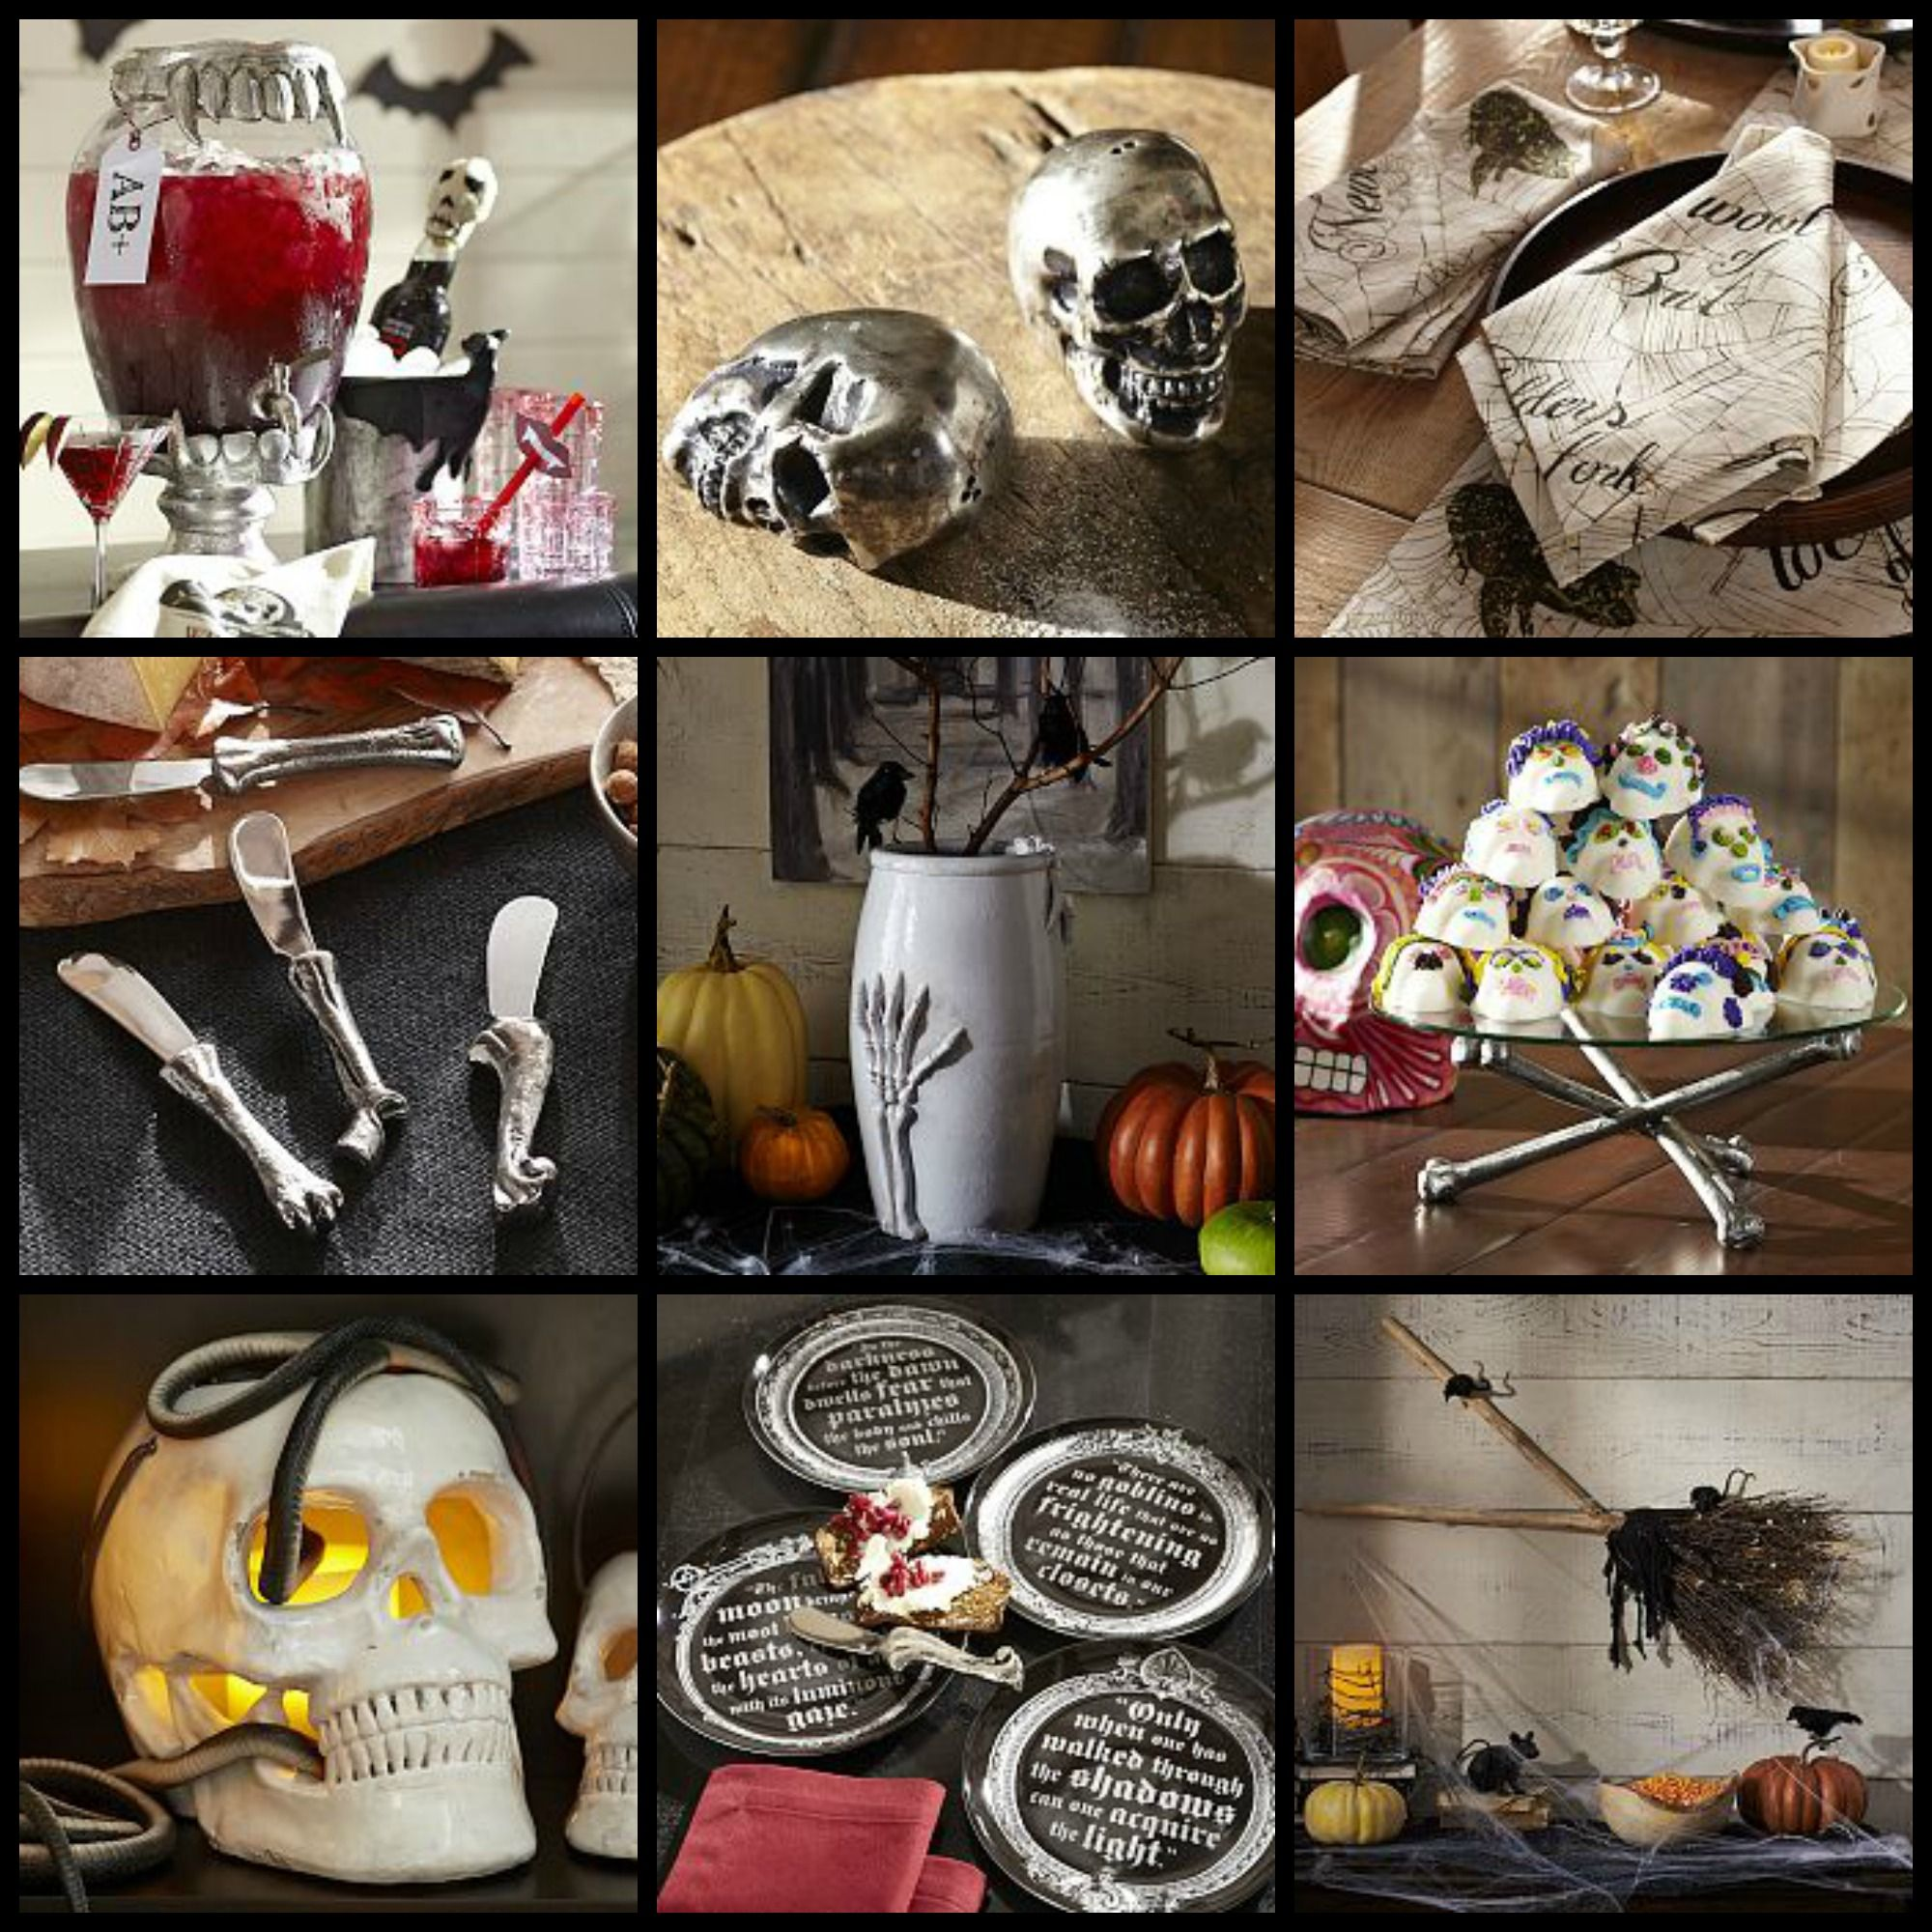 Spooky Halloween Table Decorations Event19 Pinterest Halloween - Halloween Table Decorations Pinterest